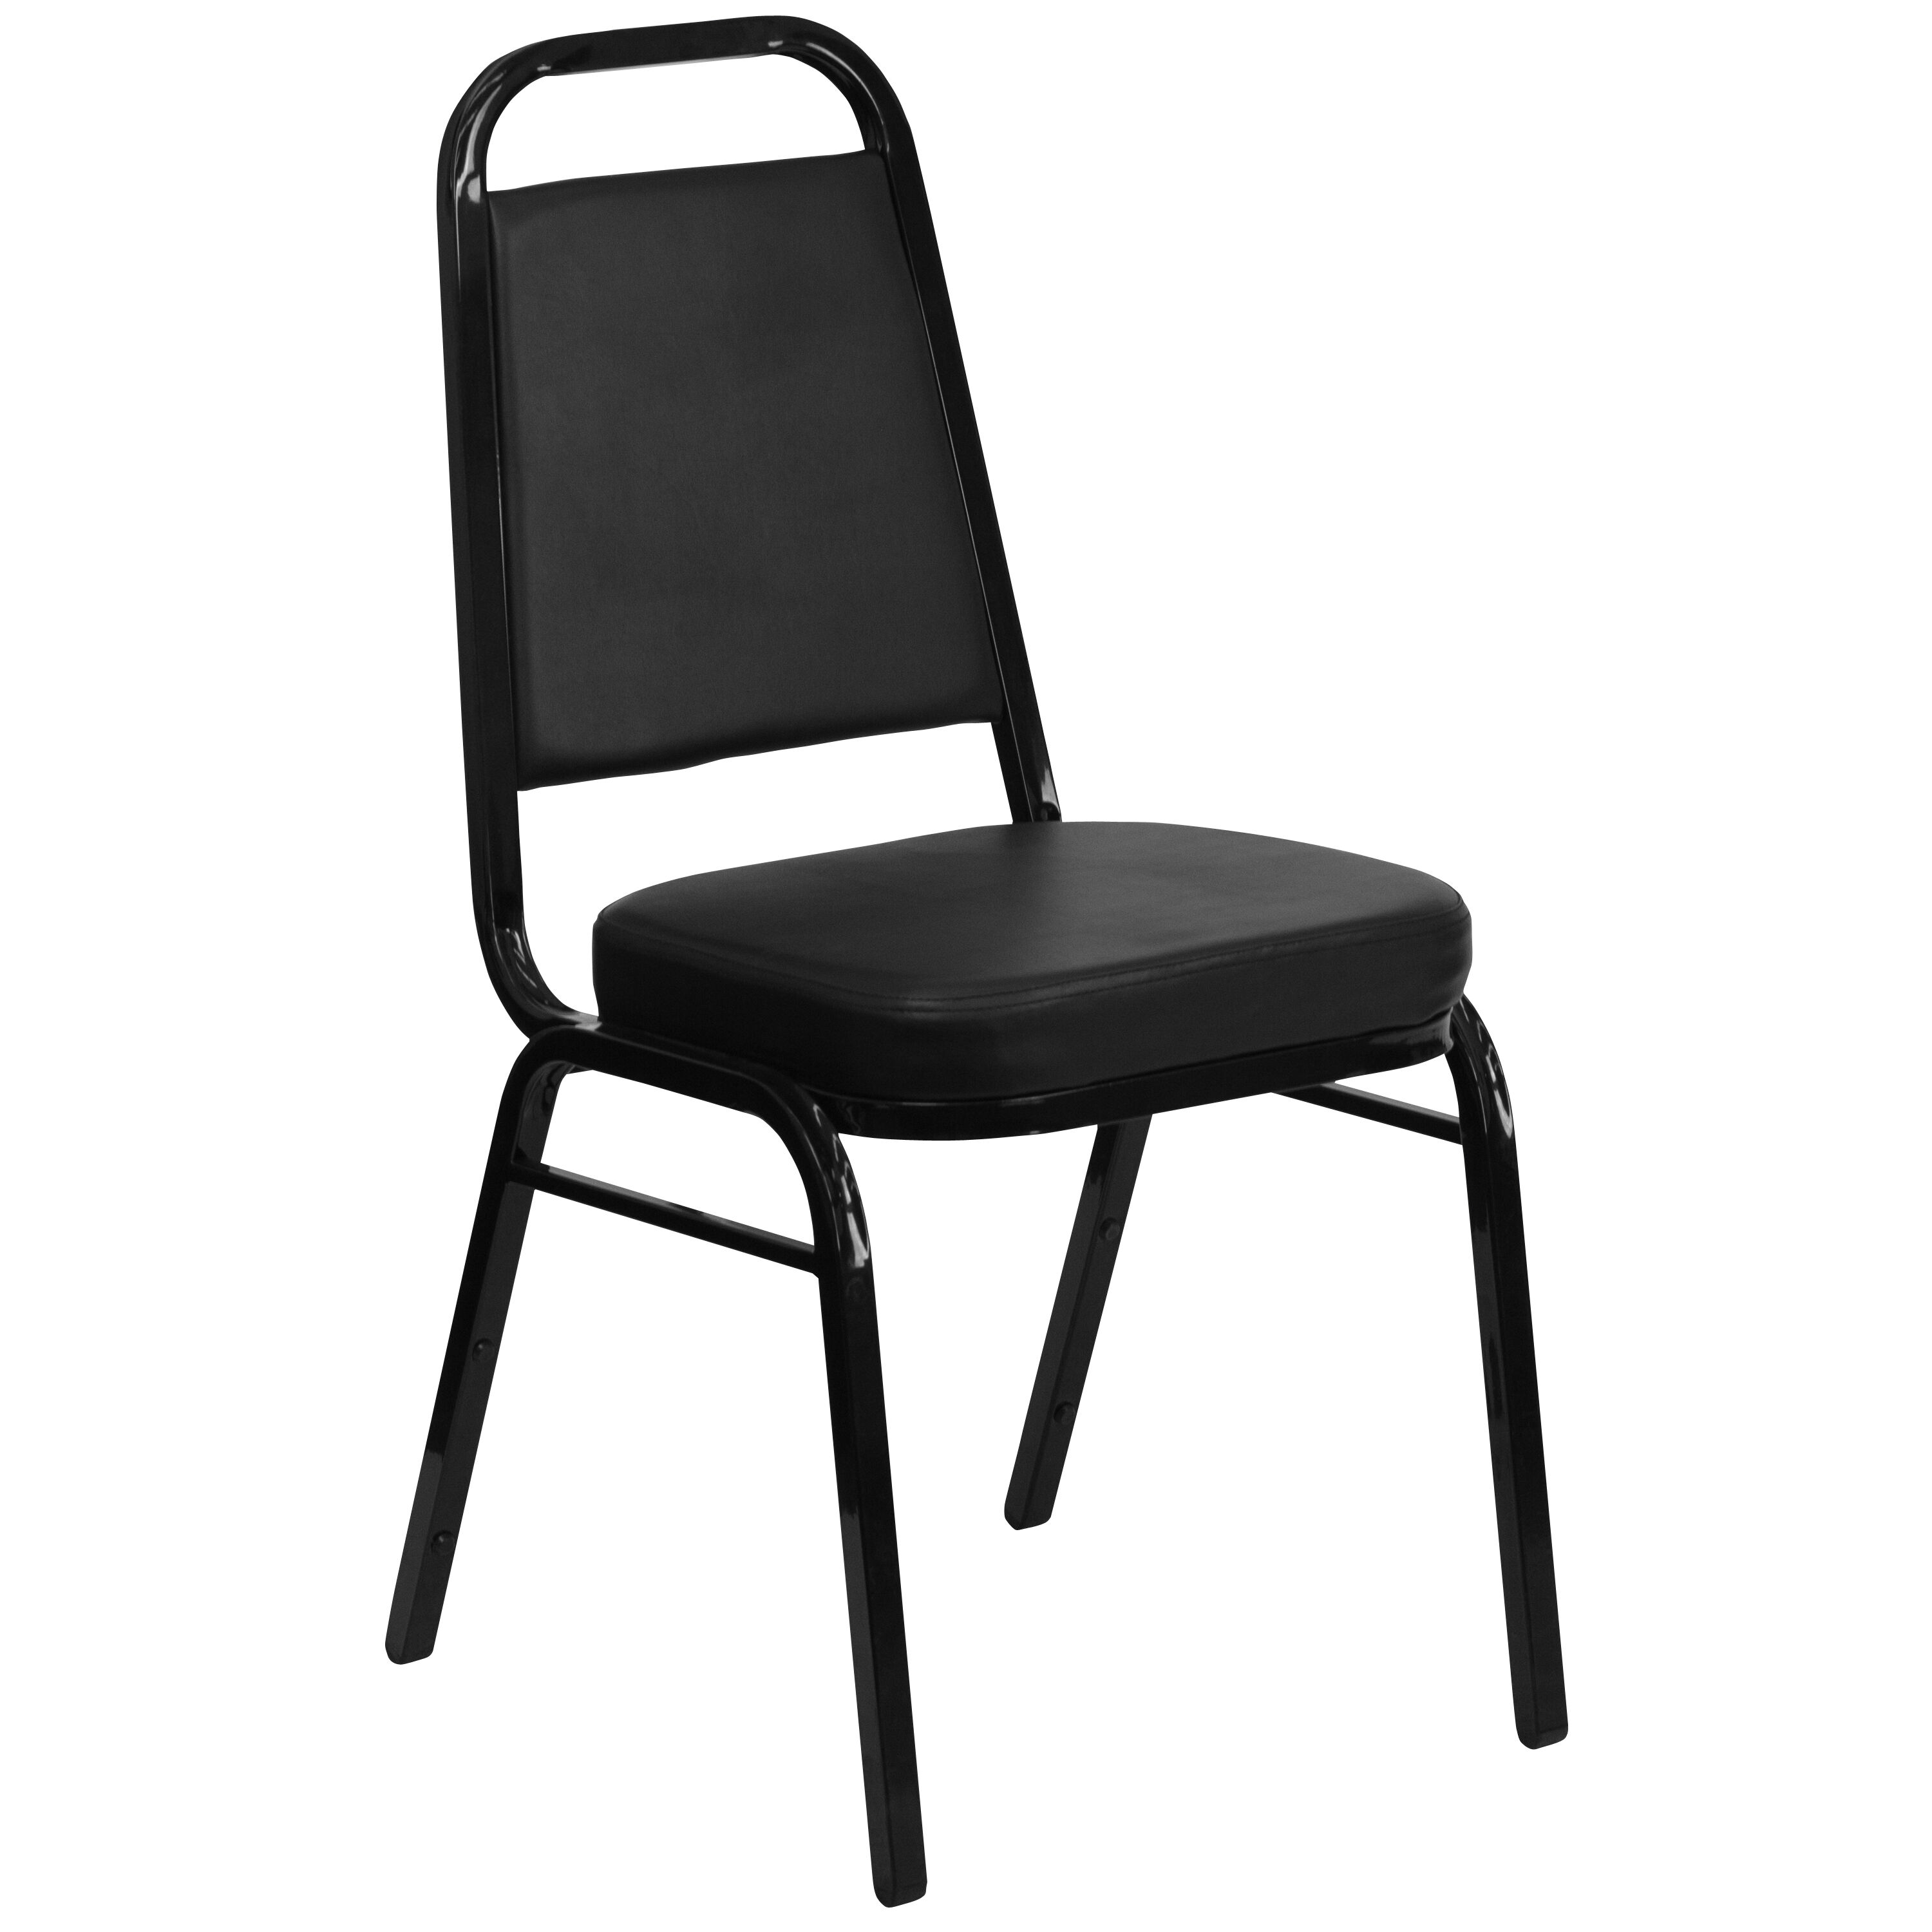 Stack Chairs at low budget prices Bizchaircom